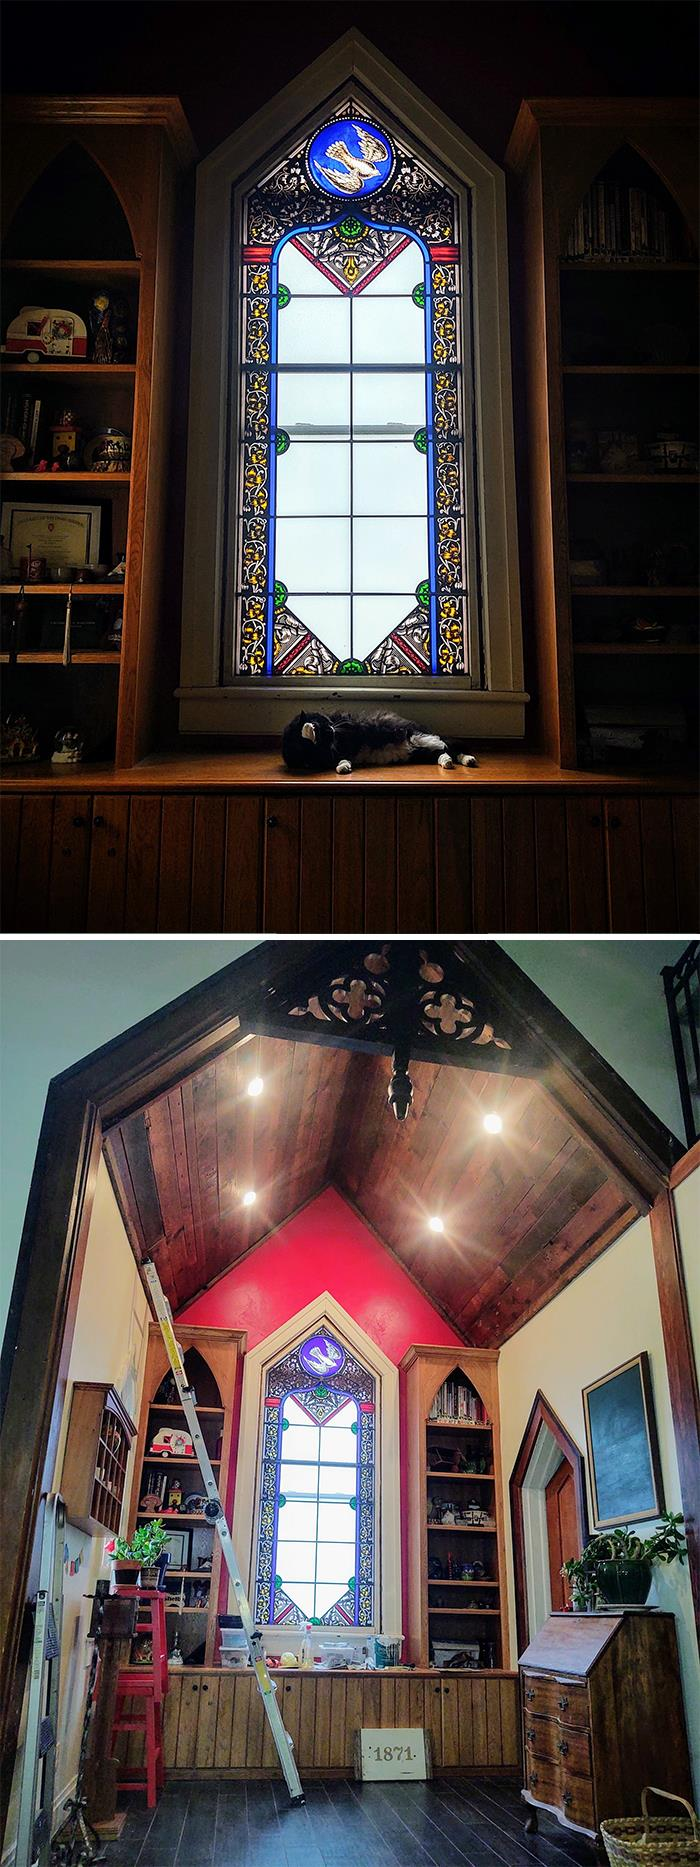 My Home Is A Renovated Episcopal Church That Was Built In 1871